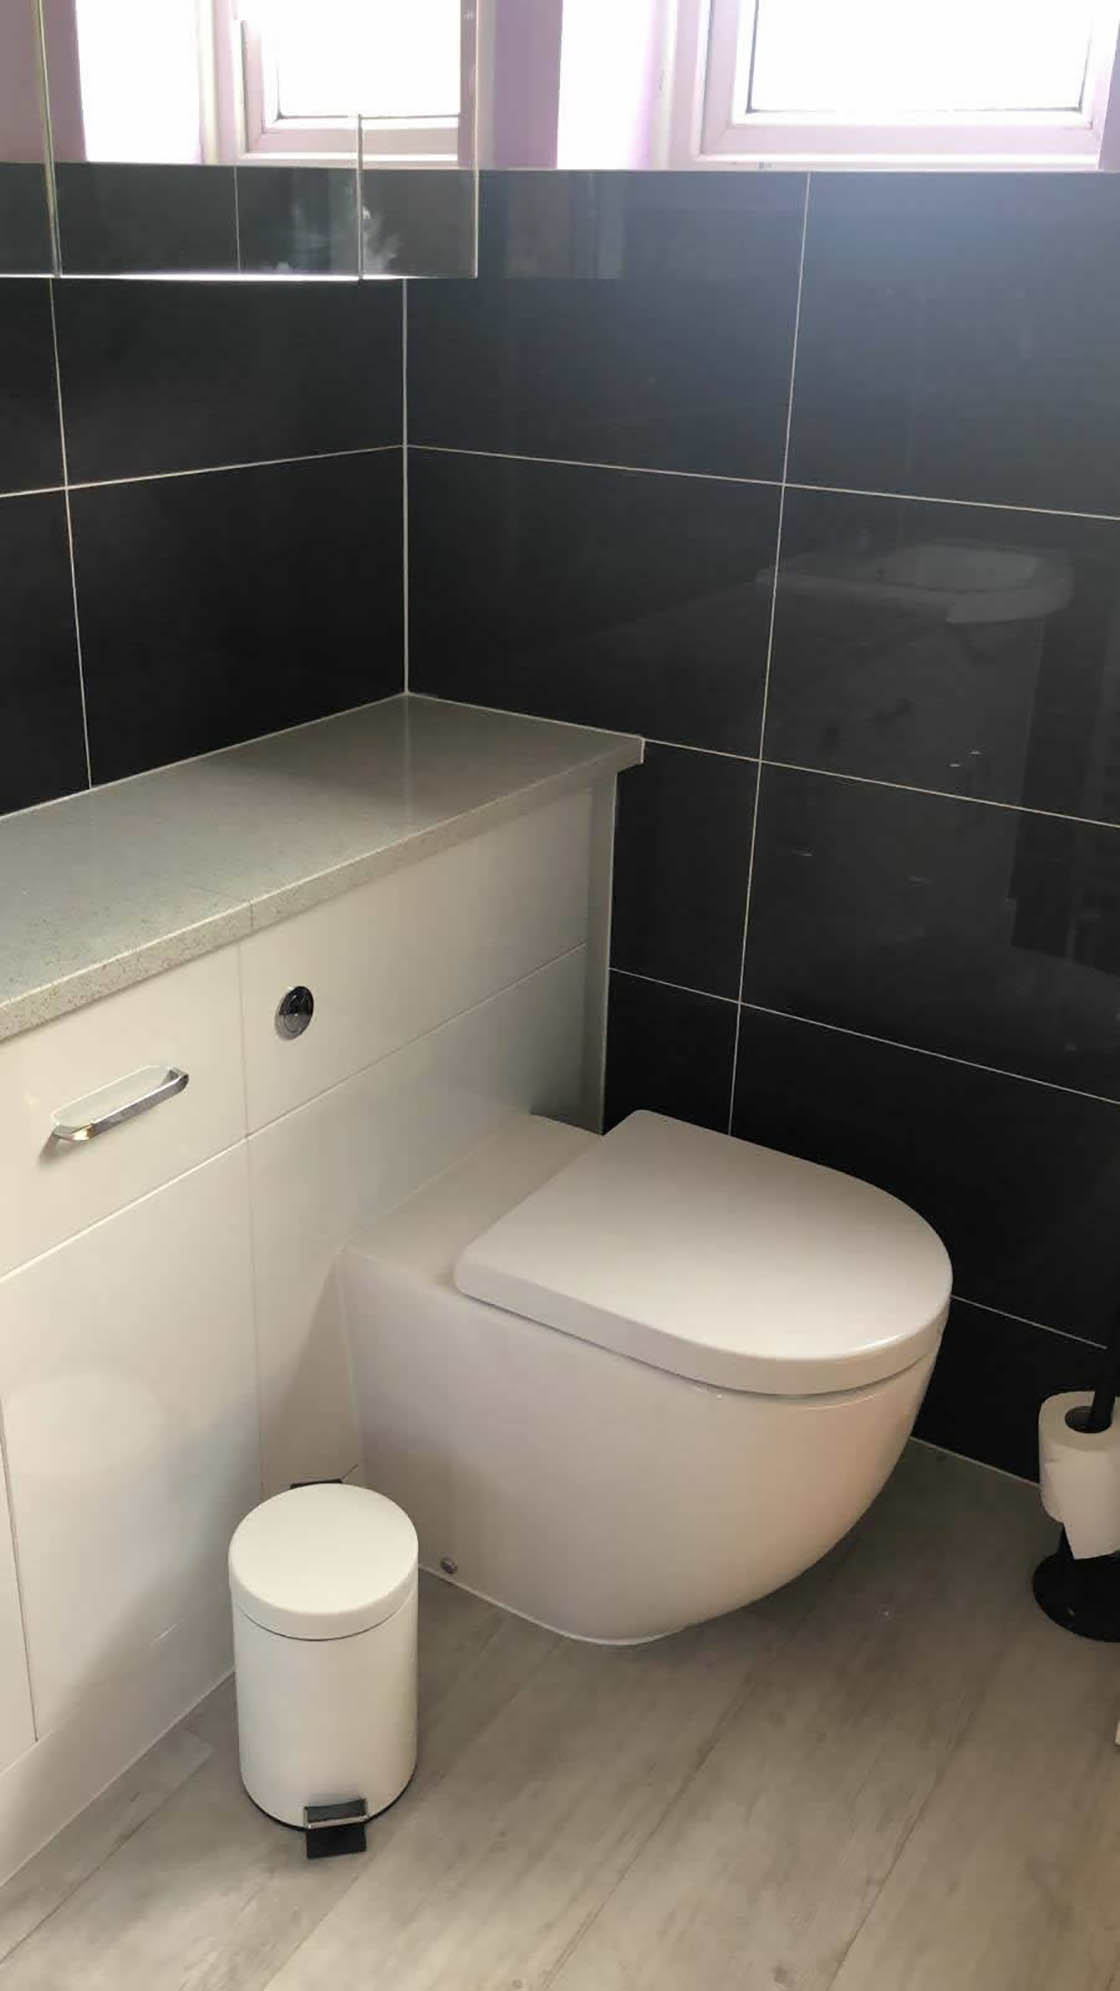 Compact WC Unit in Bathroom